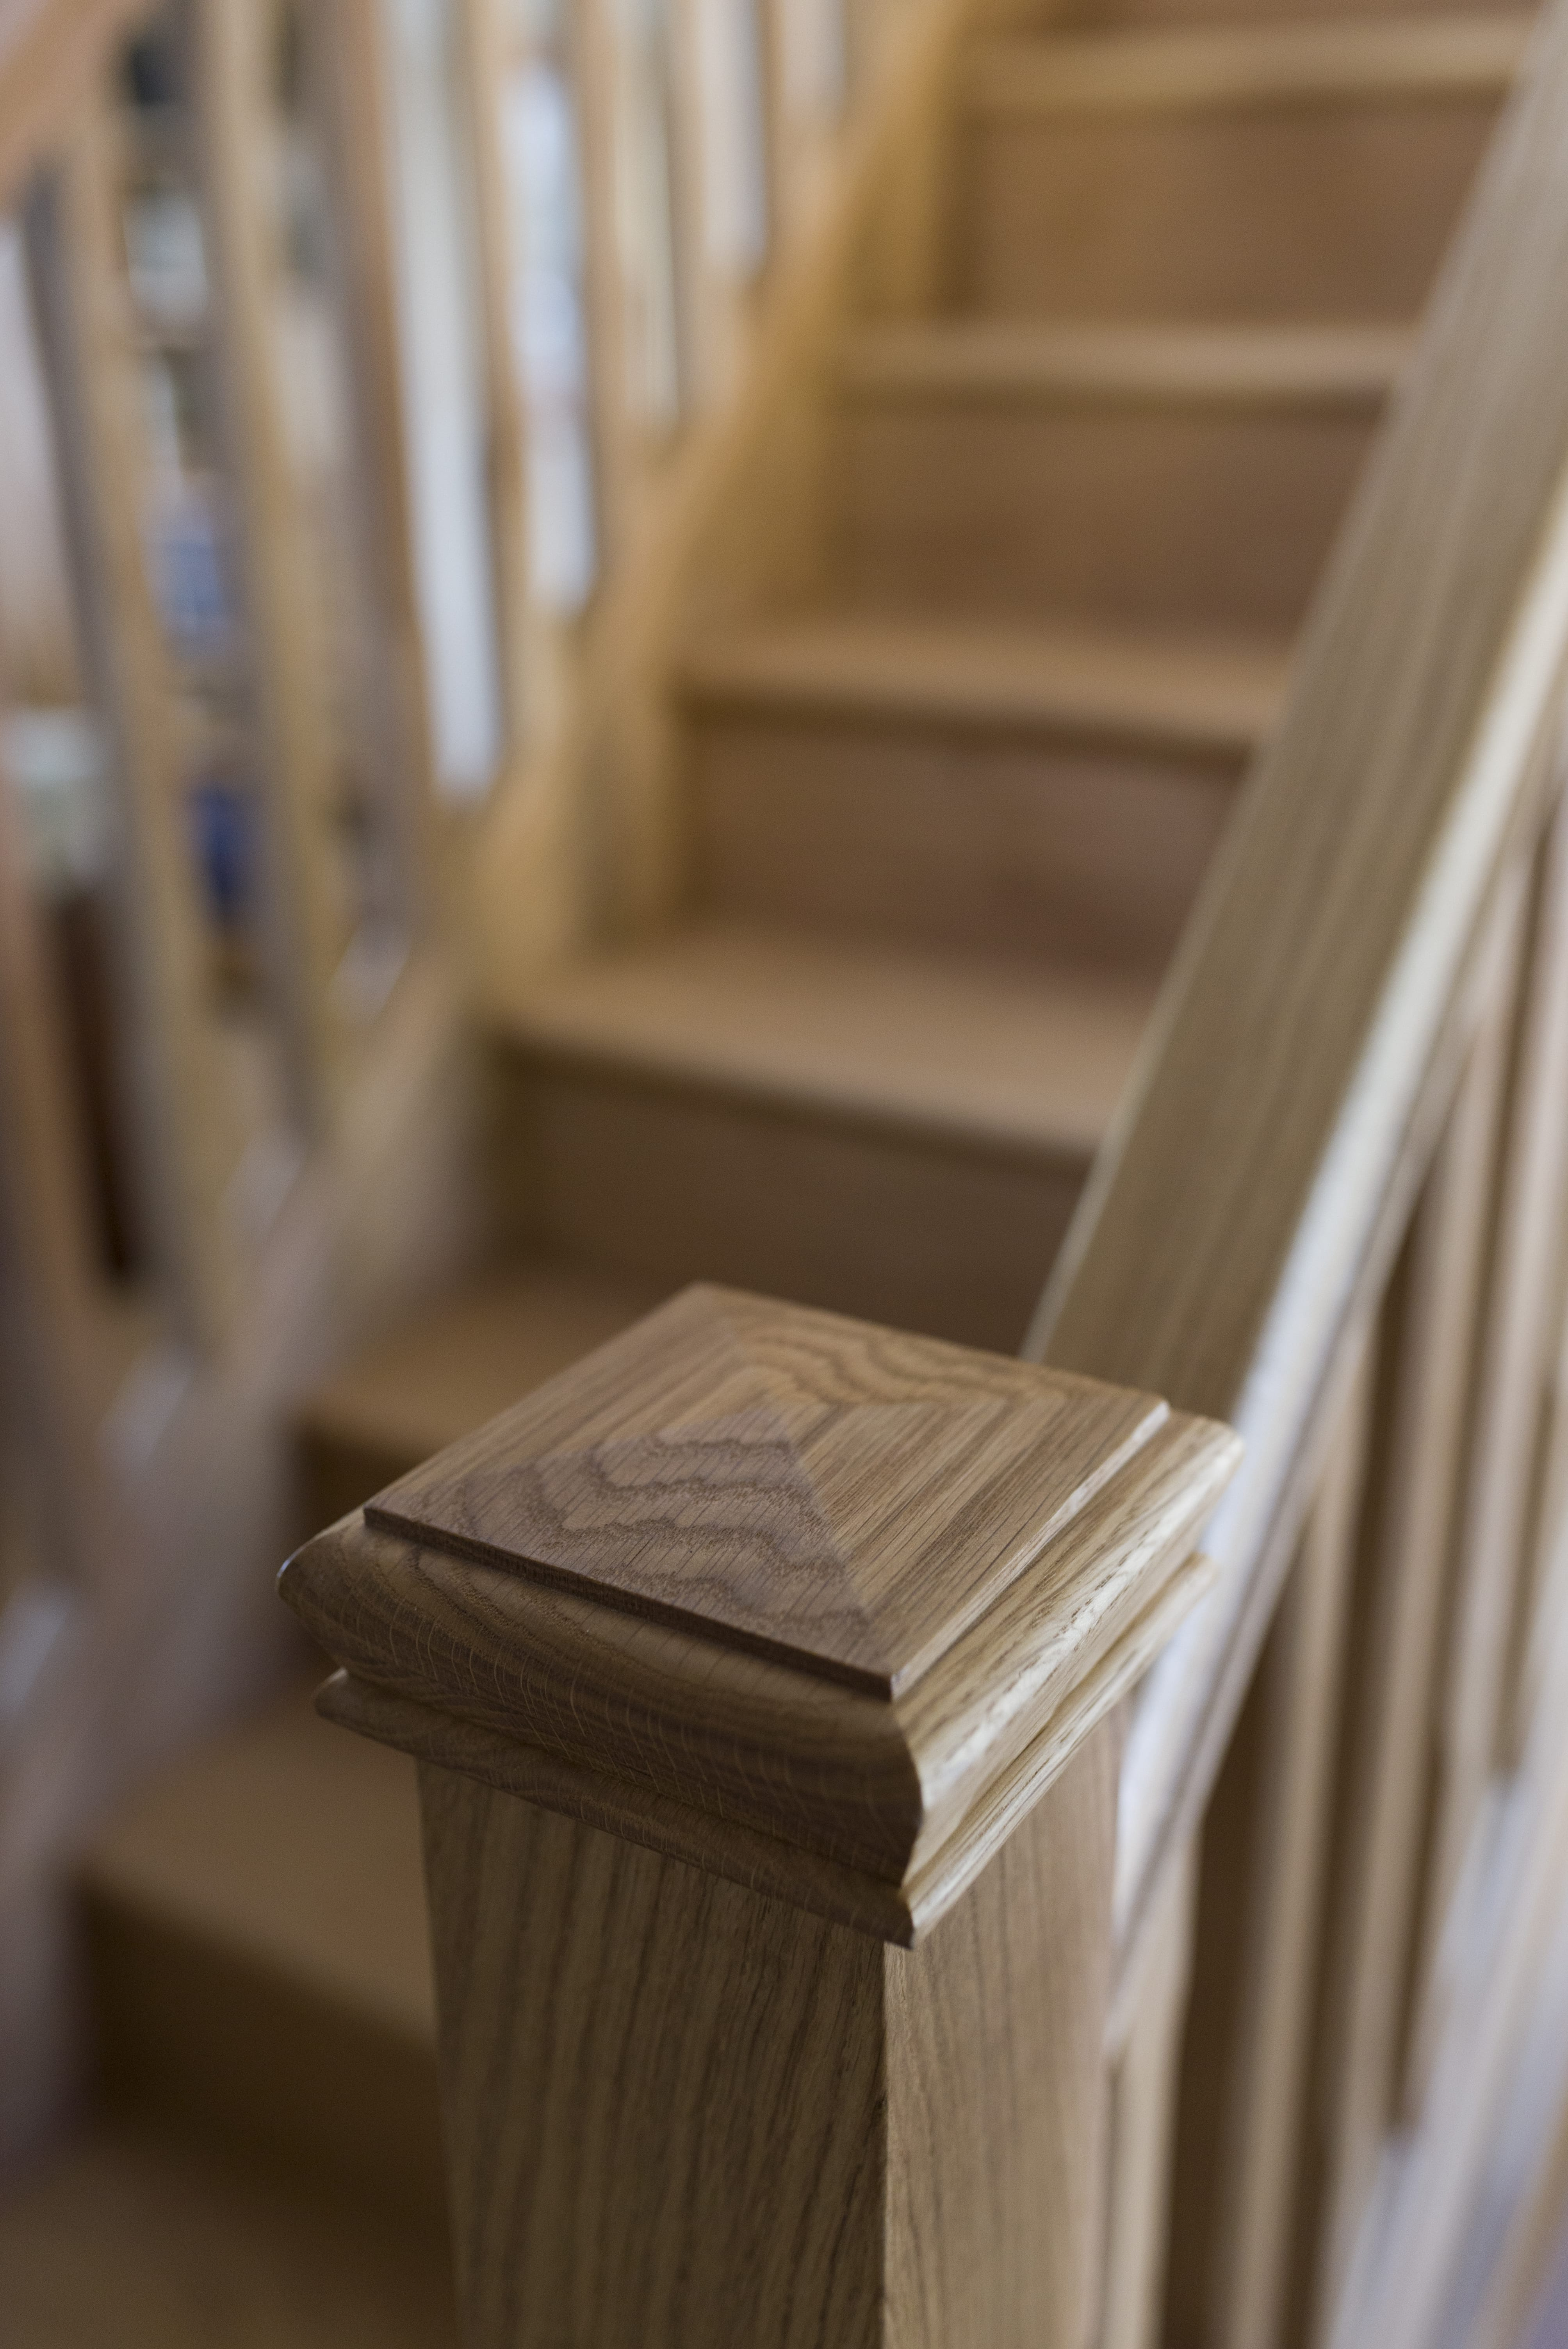 Oak Is Possibly The Most Luxurious Way To Refurbish Your Staircase And Give  A Warm, Top Spec Feeling To Your Hallway. This Style Is Very Flexible And  Can ...